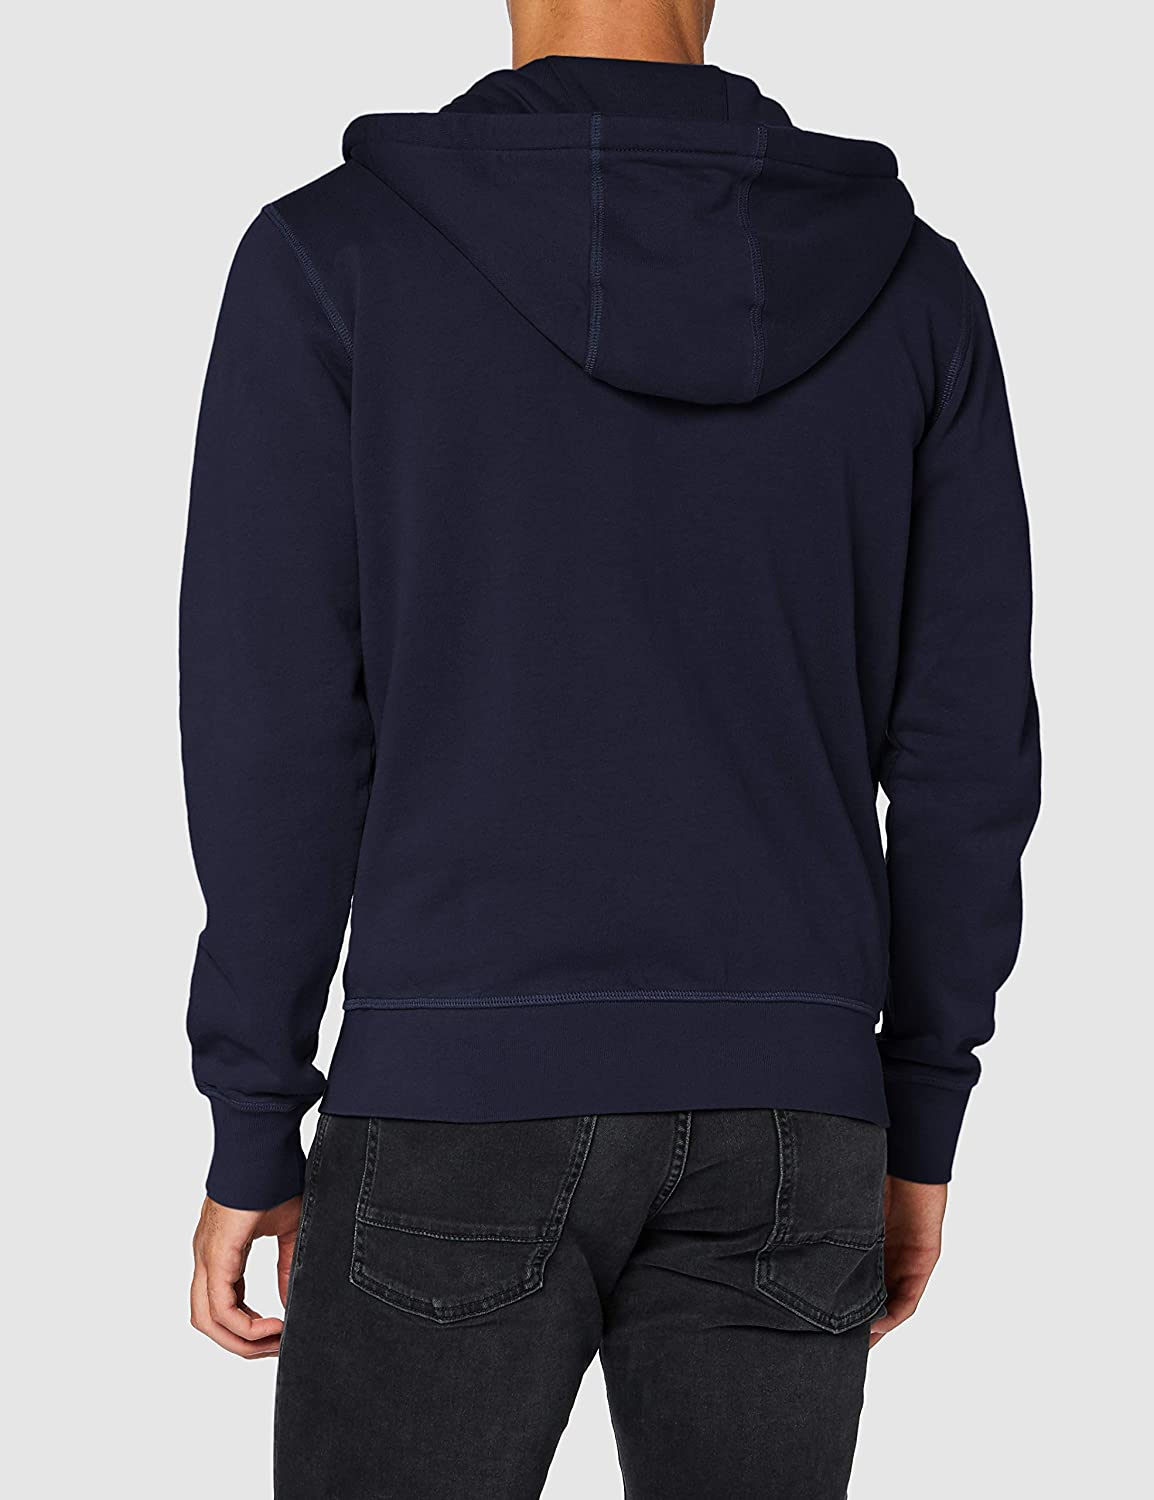 NORTH SAILS Hooded Full Zip W/Logo Sweatshirt à Capuche Homme Blue Navy